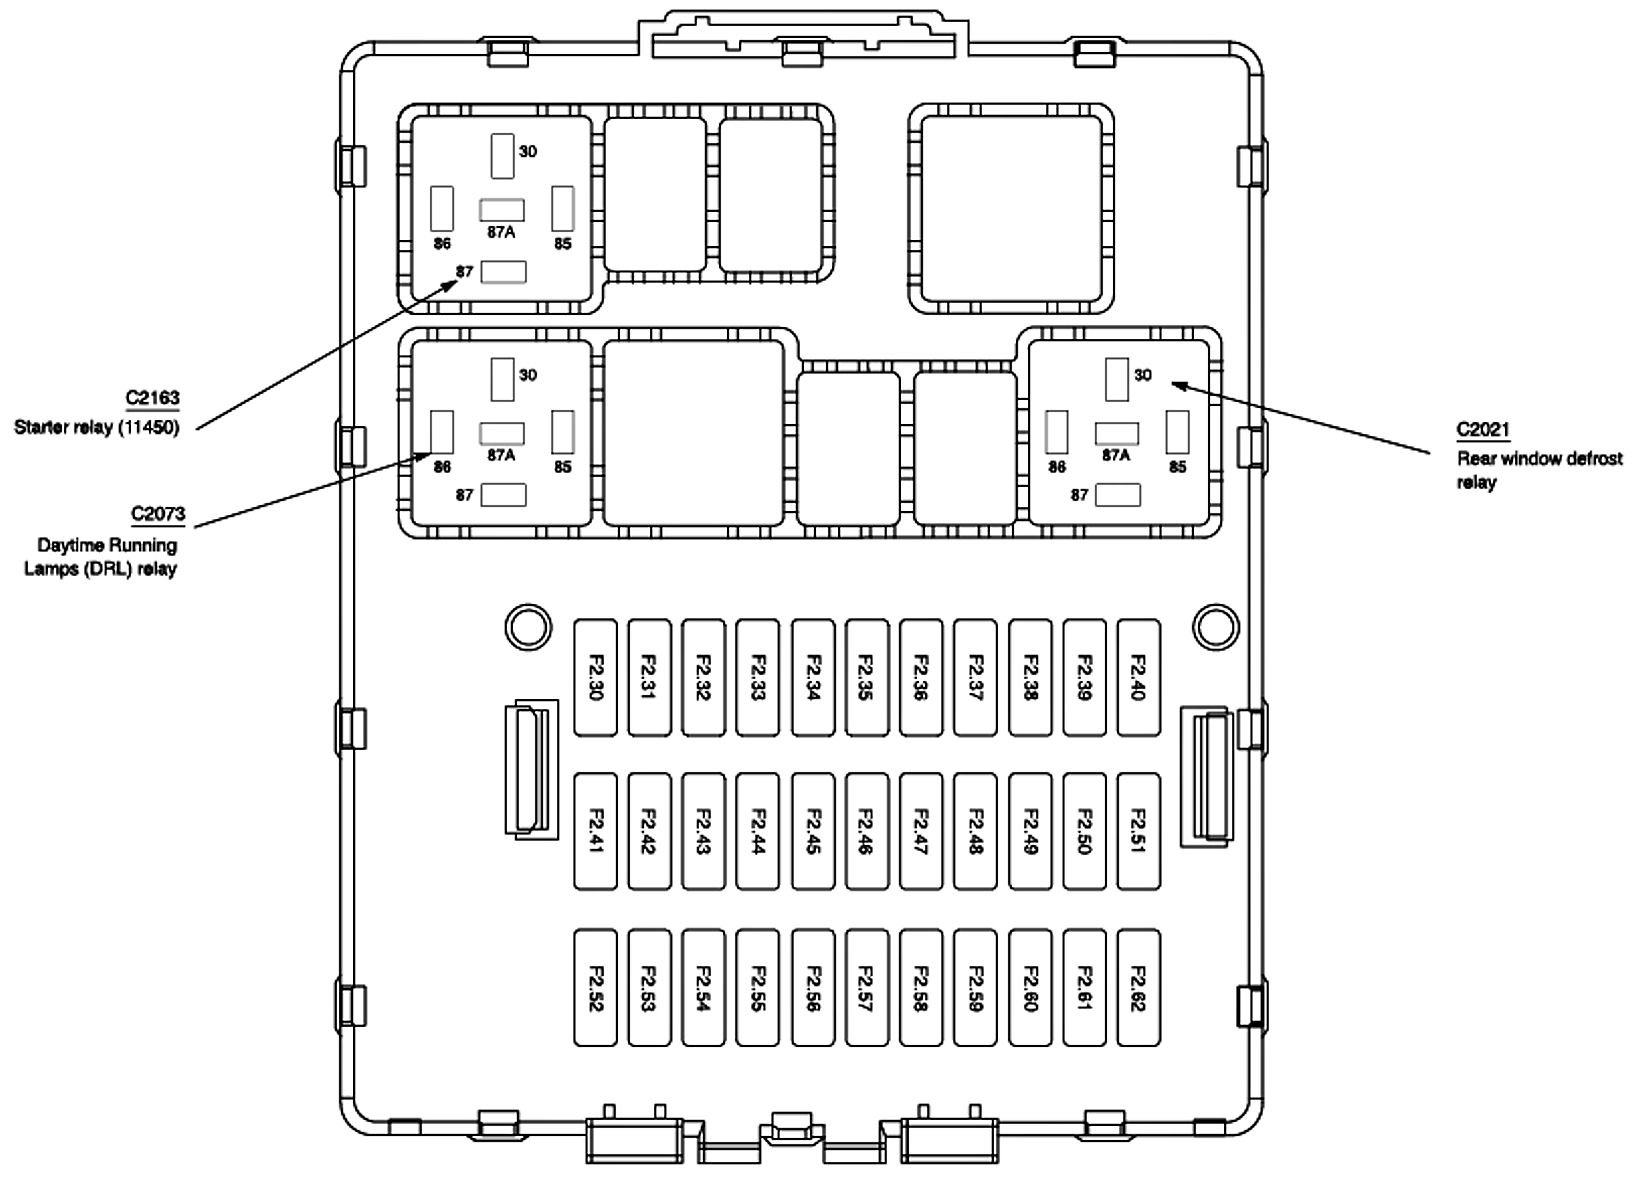 is there any place i can get a fuse box layout diagram so that i know which fuse is for what